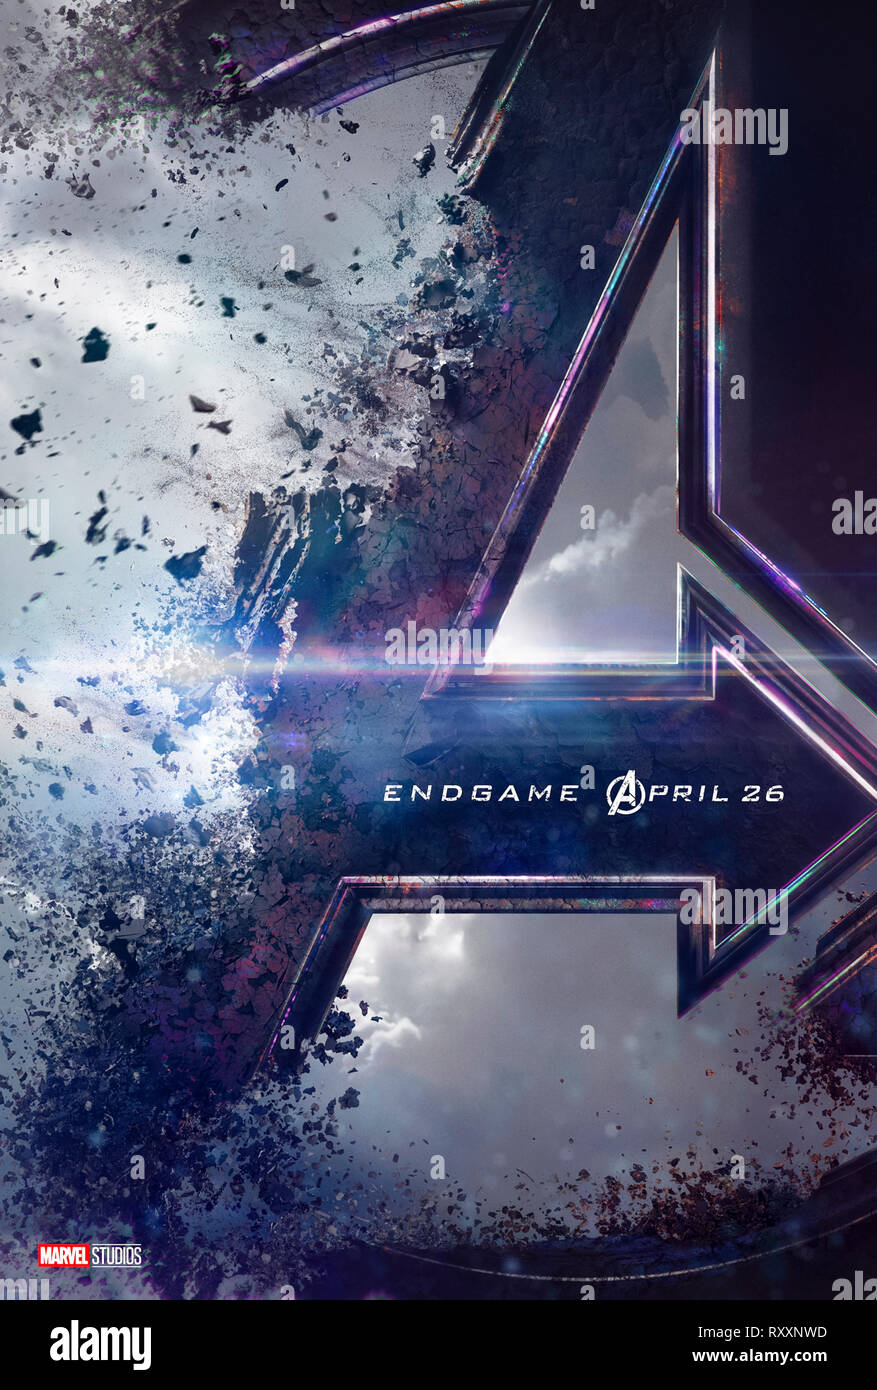 Avengers: Endgame (2019) directed  by Anthony and Joe Russo, starring Bradley Cooper, Brie Larson and Chris Hemsworth. - Stock Image